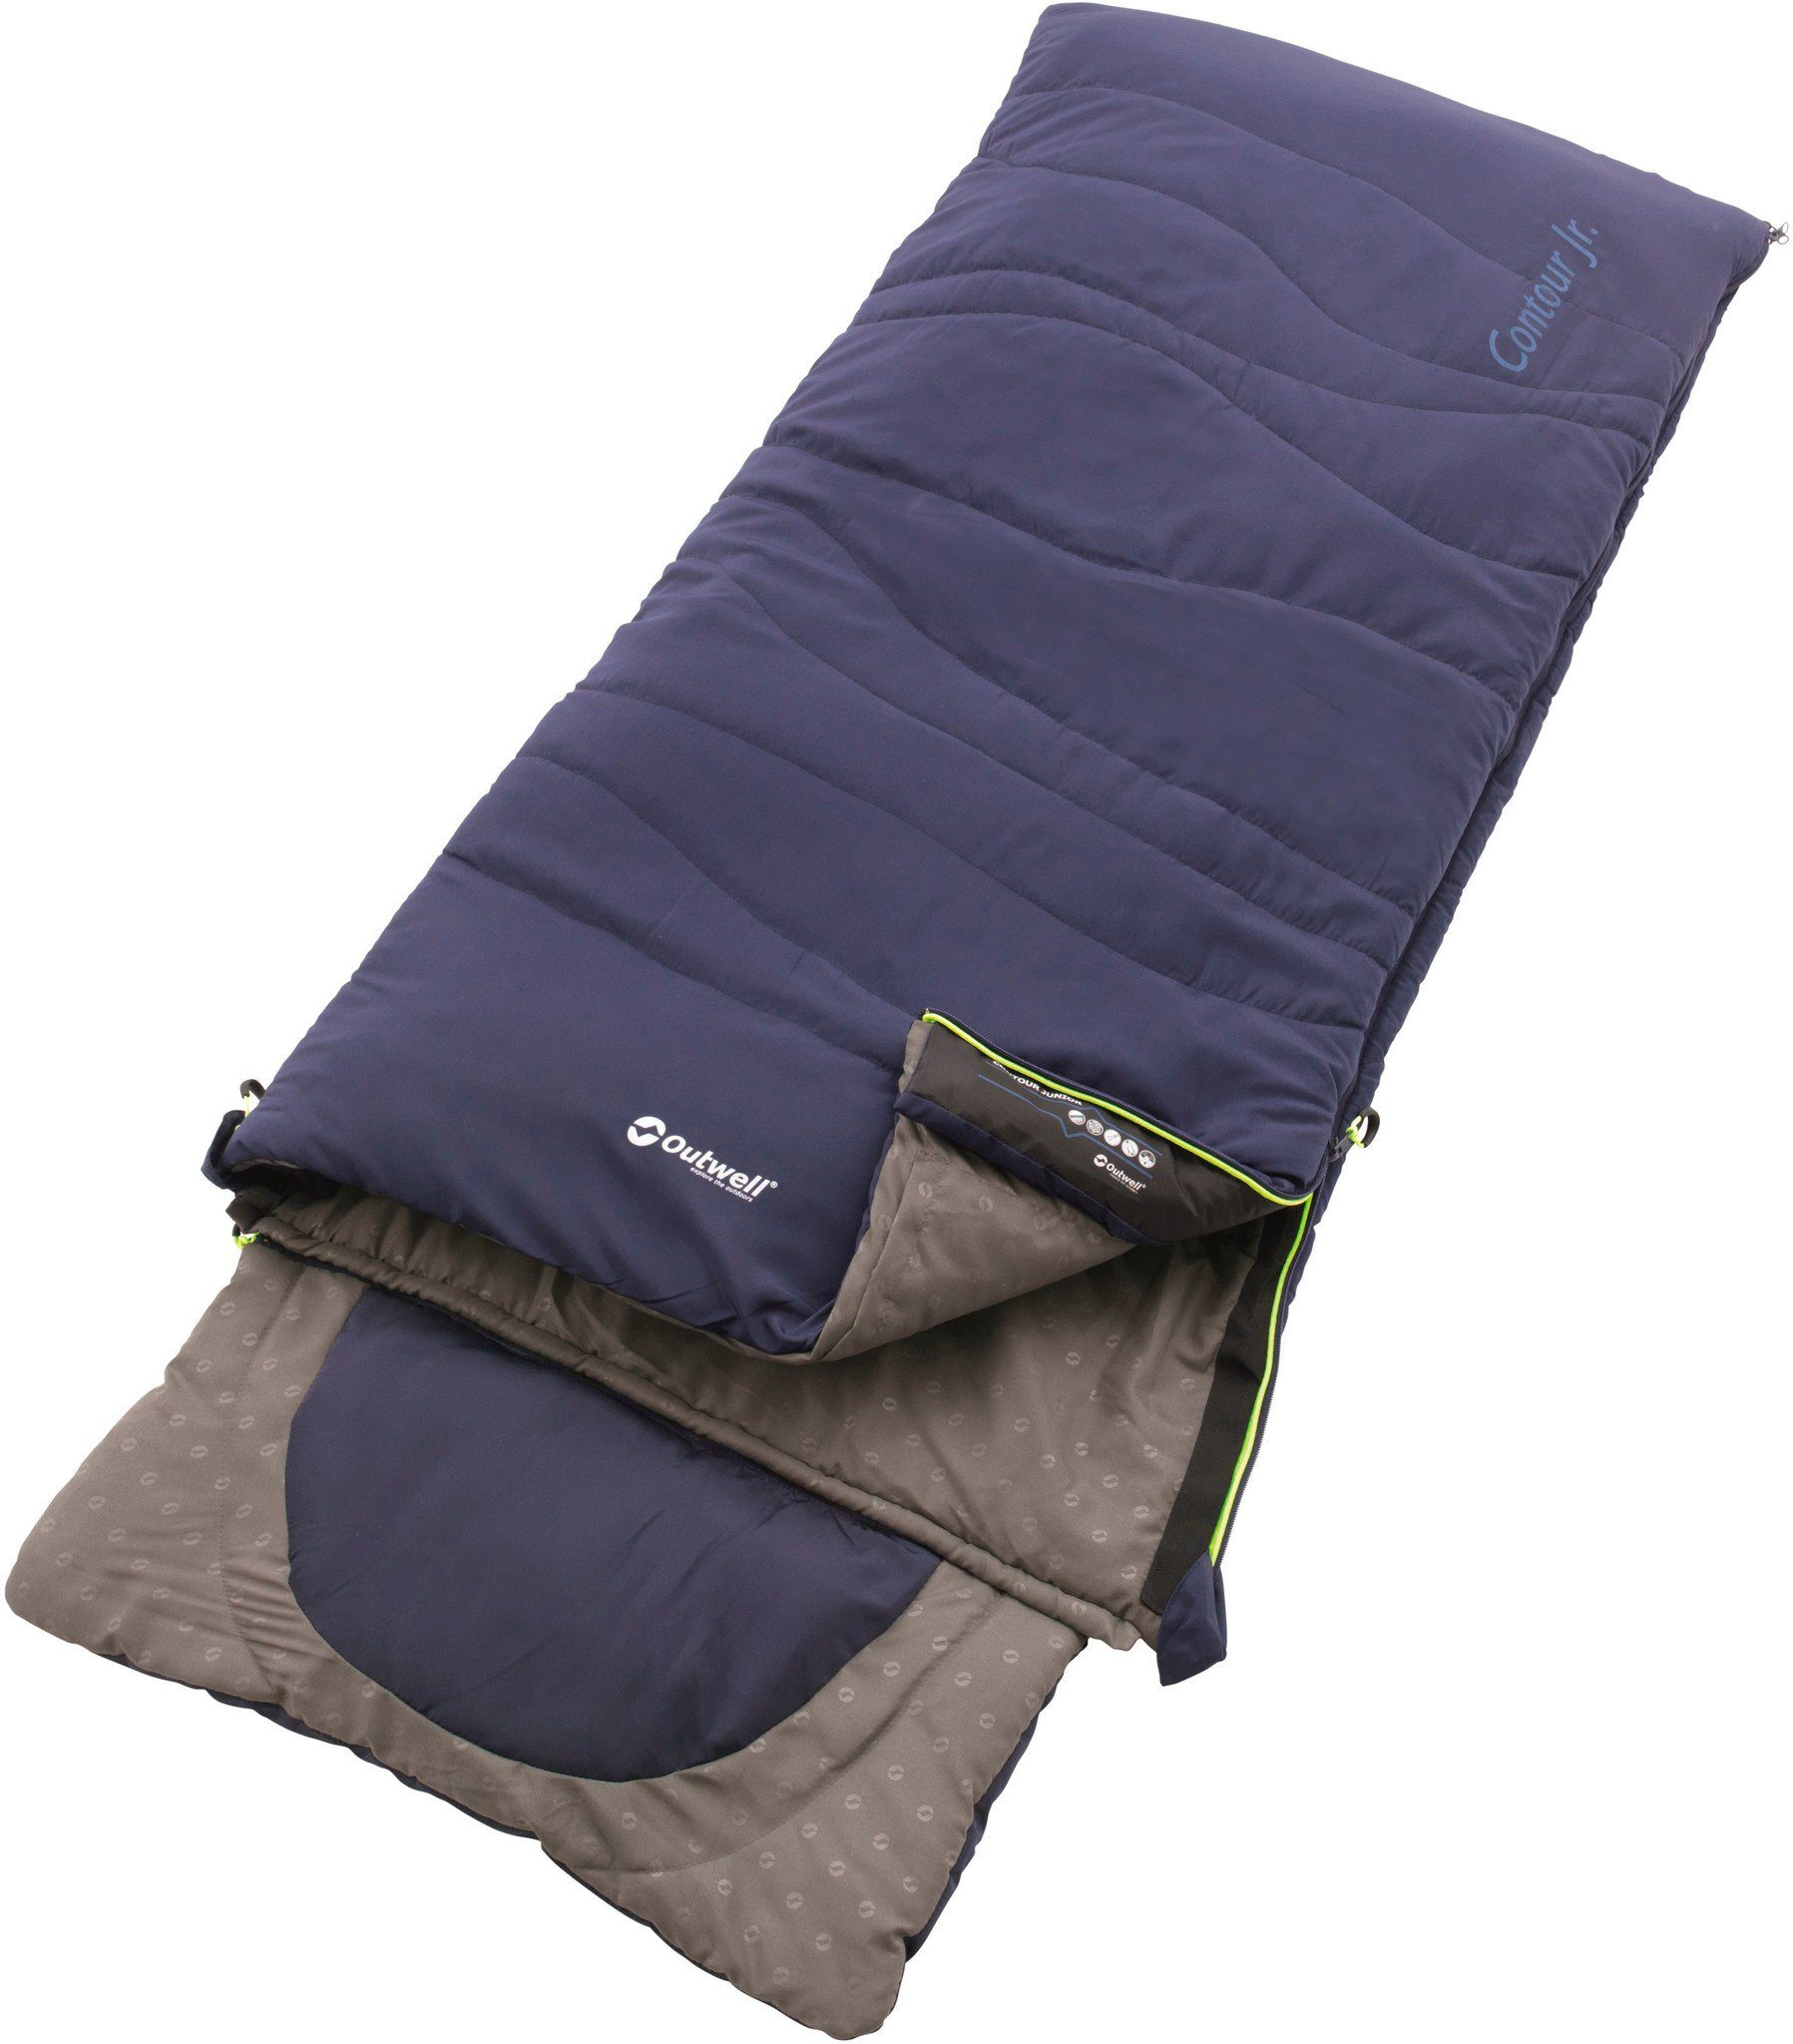 Outwell Wanderrucksack »Contour Sleeping Bag Junior«